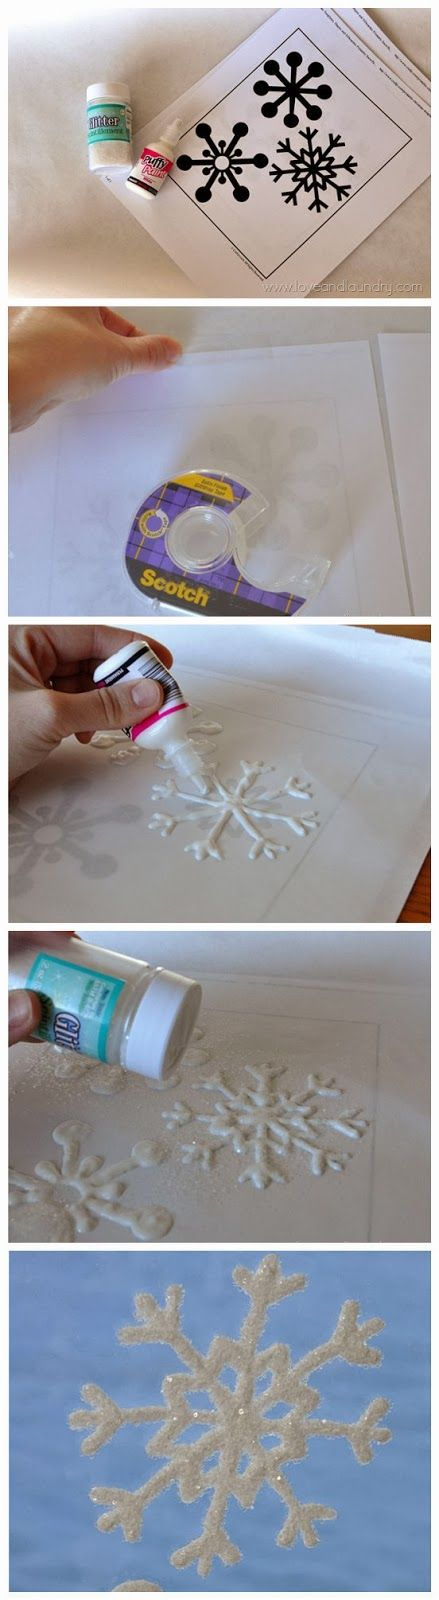 DIY Glitter Snowflake Window Clings.